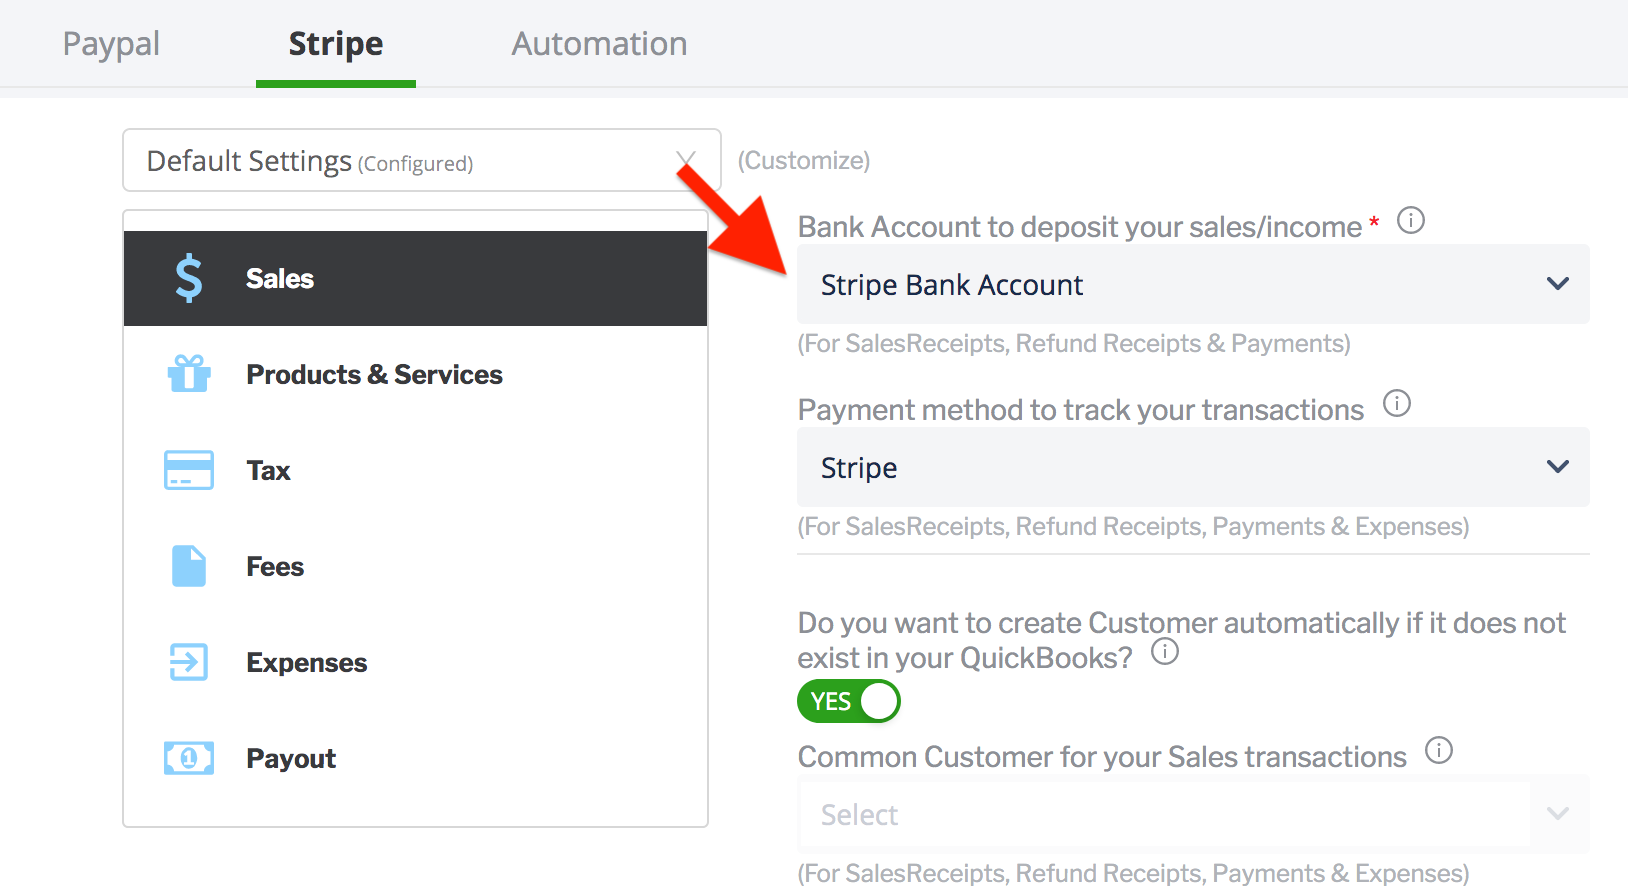 paytraqer Stripe Sales settings